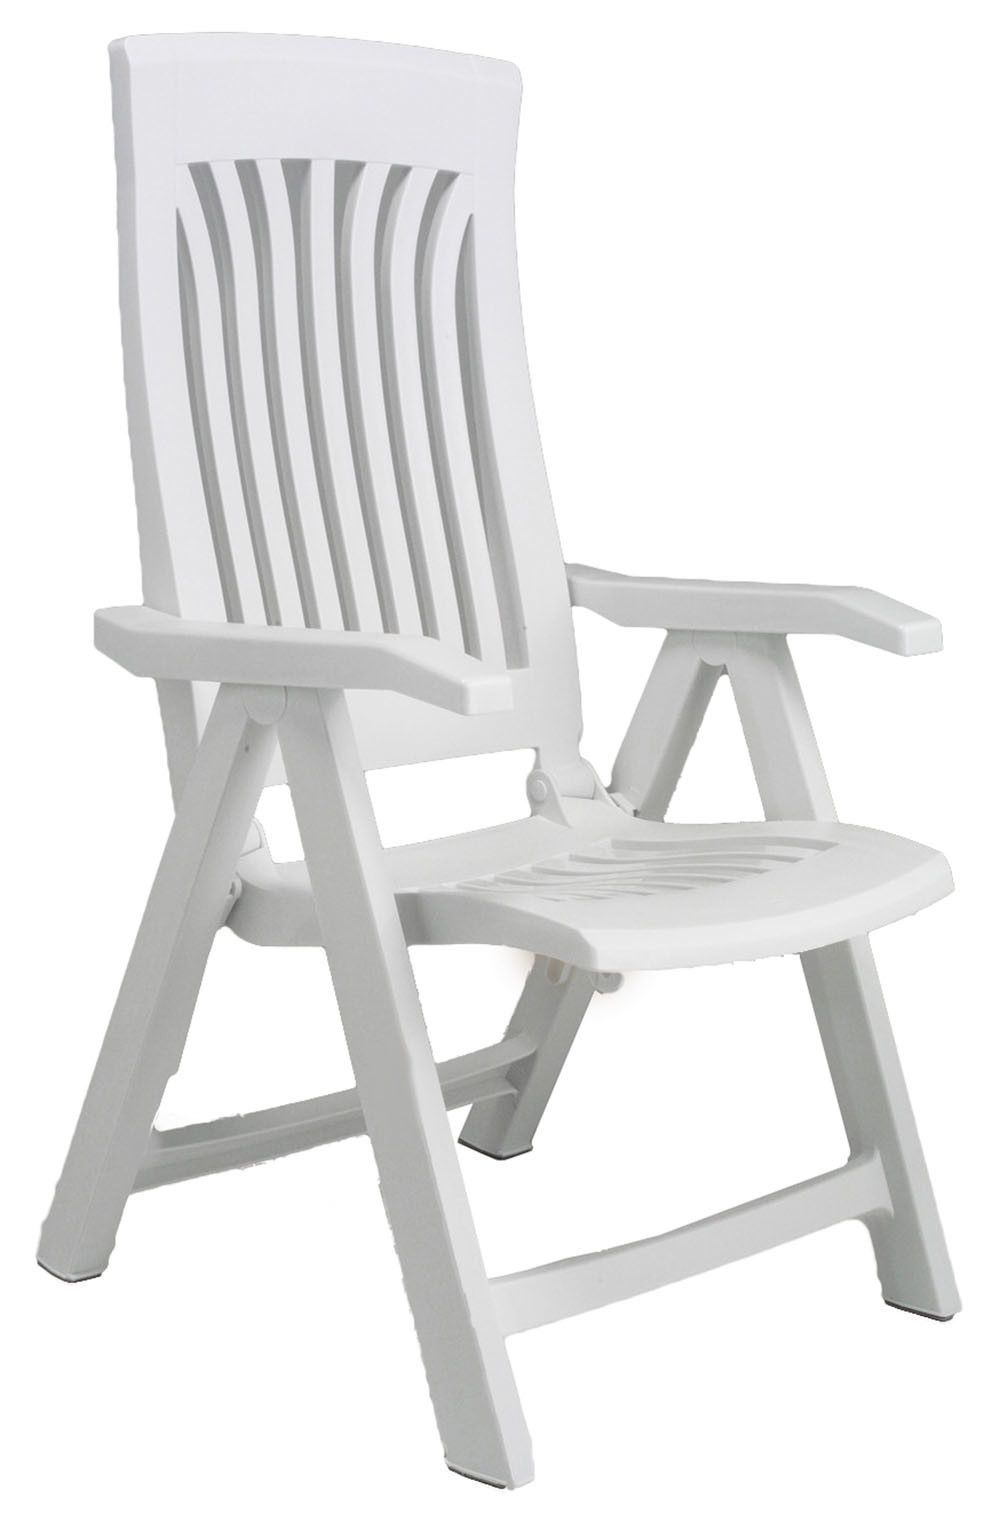 Davinia Folding Garden Chair Set Of 2 Plastic Garden Chairs Patio Chairs Chair